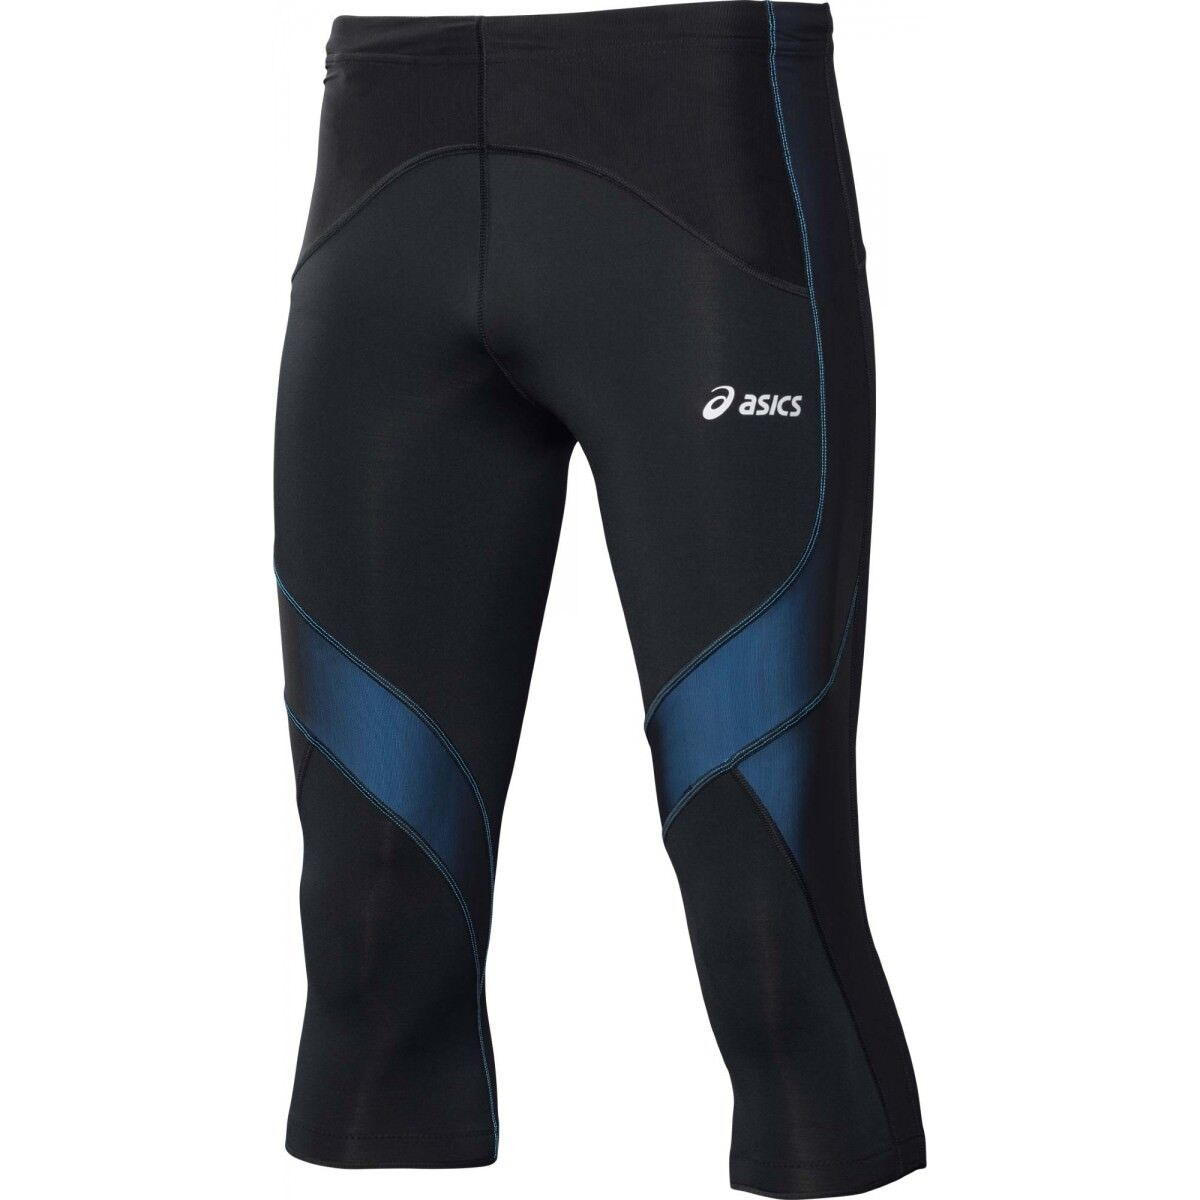 Details about Asics Muscle Support Mens Black Blue Compression Training Tights 114507 8070 UW